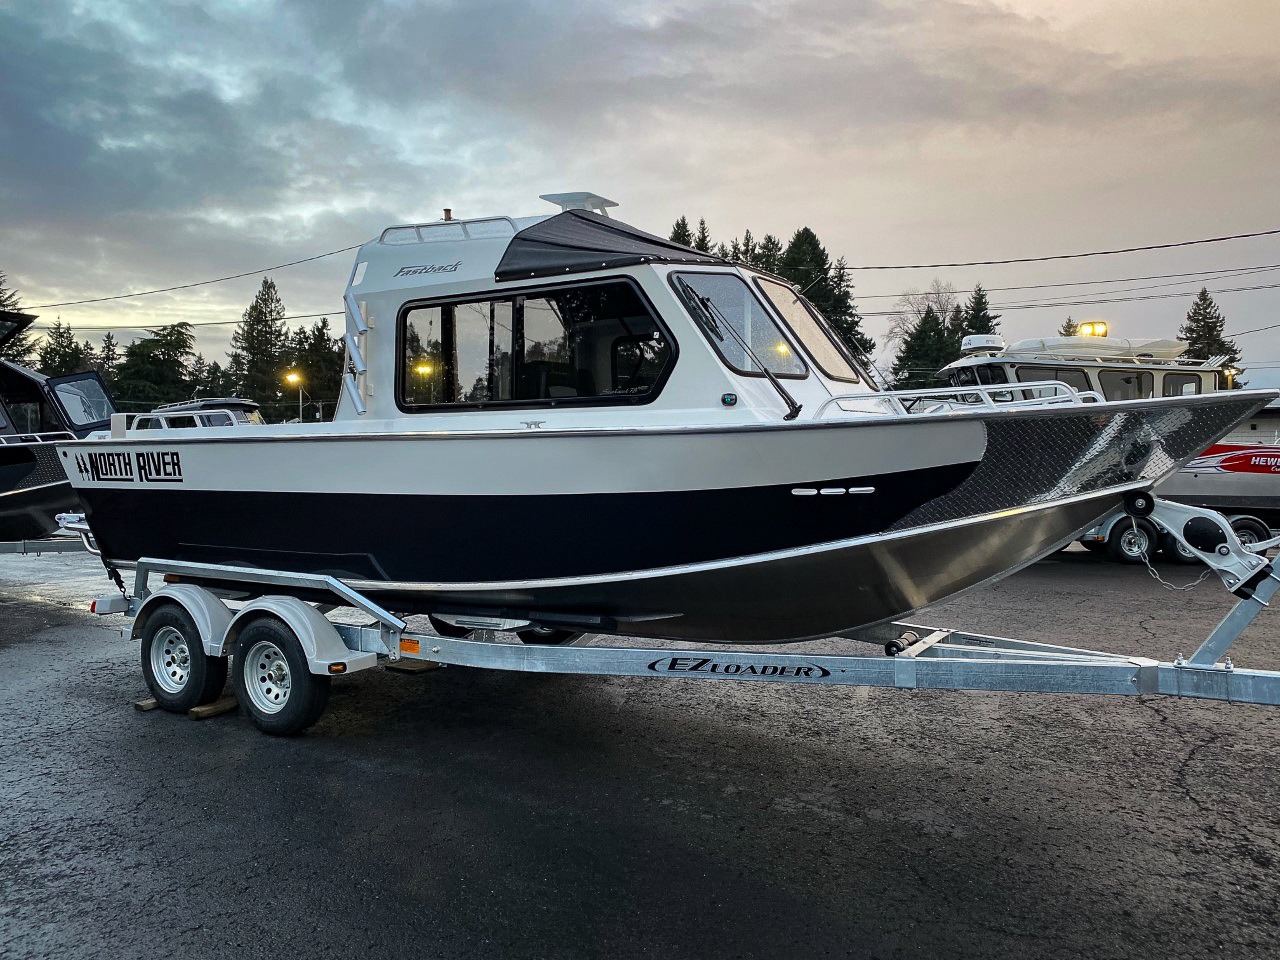 North River 22 Seahawk Fastback - ON ORDER